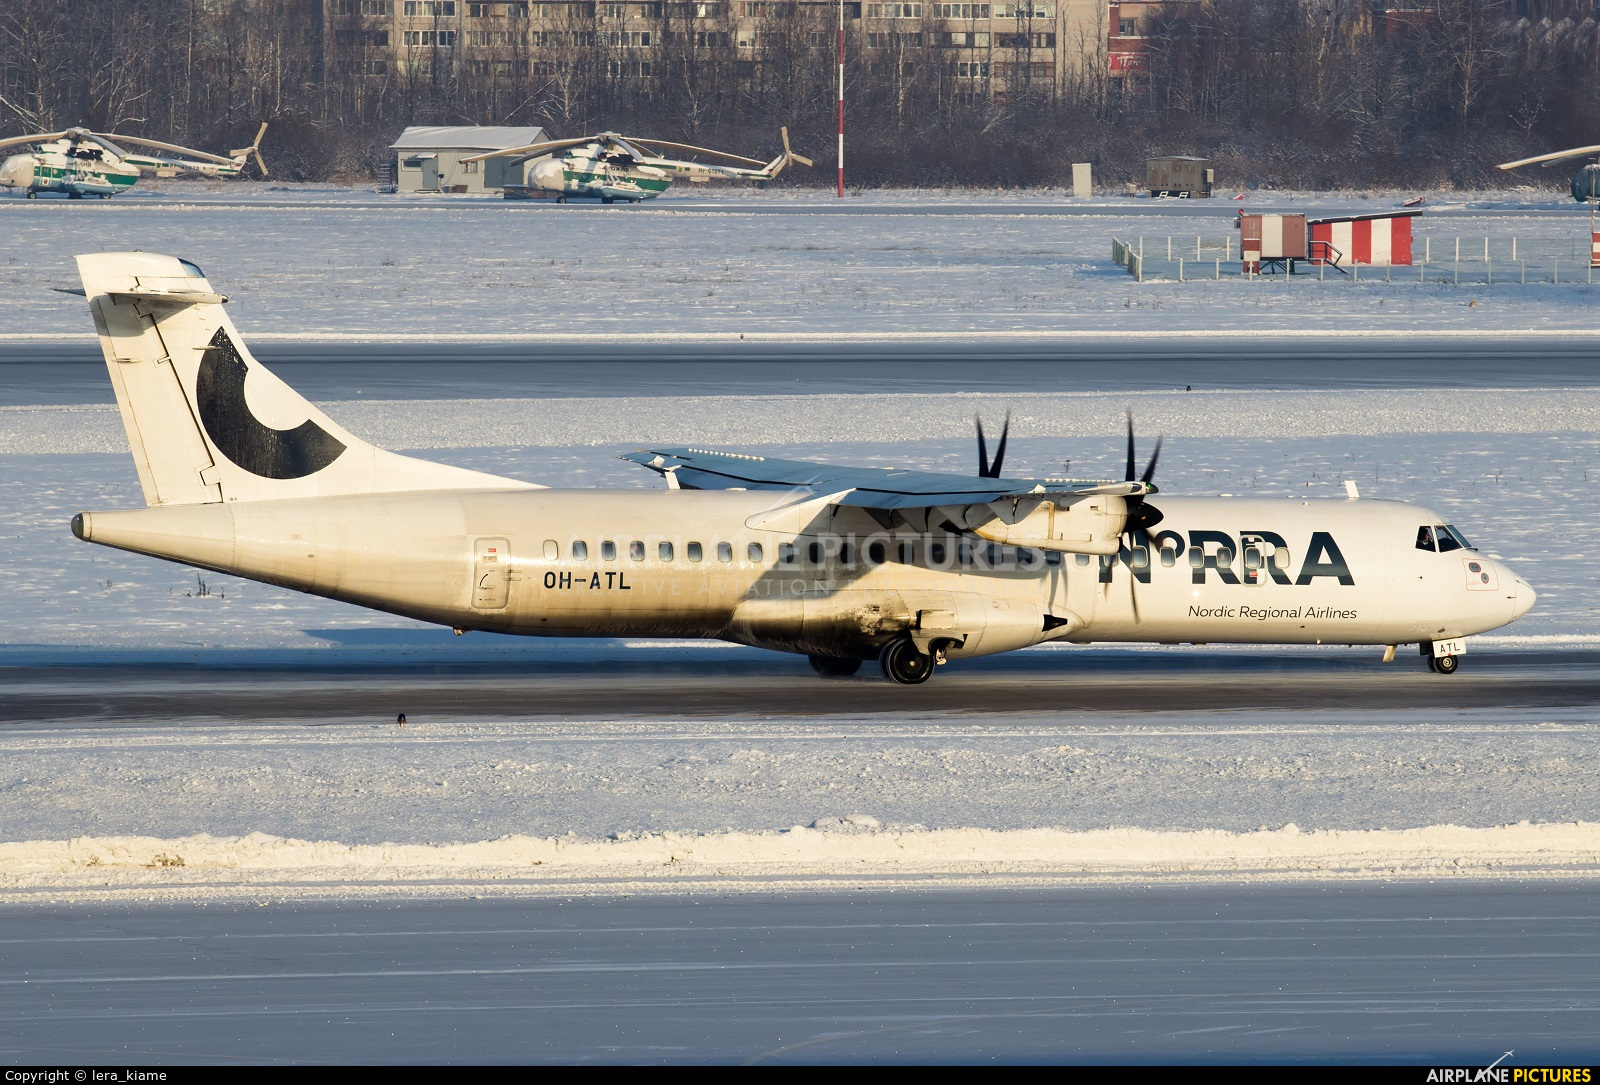 Airline Milf oh-atl - norra - nordic regional airlines atr 72 (all models